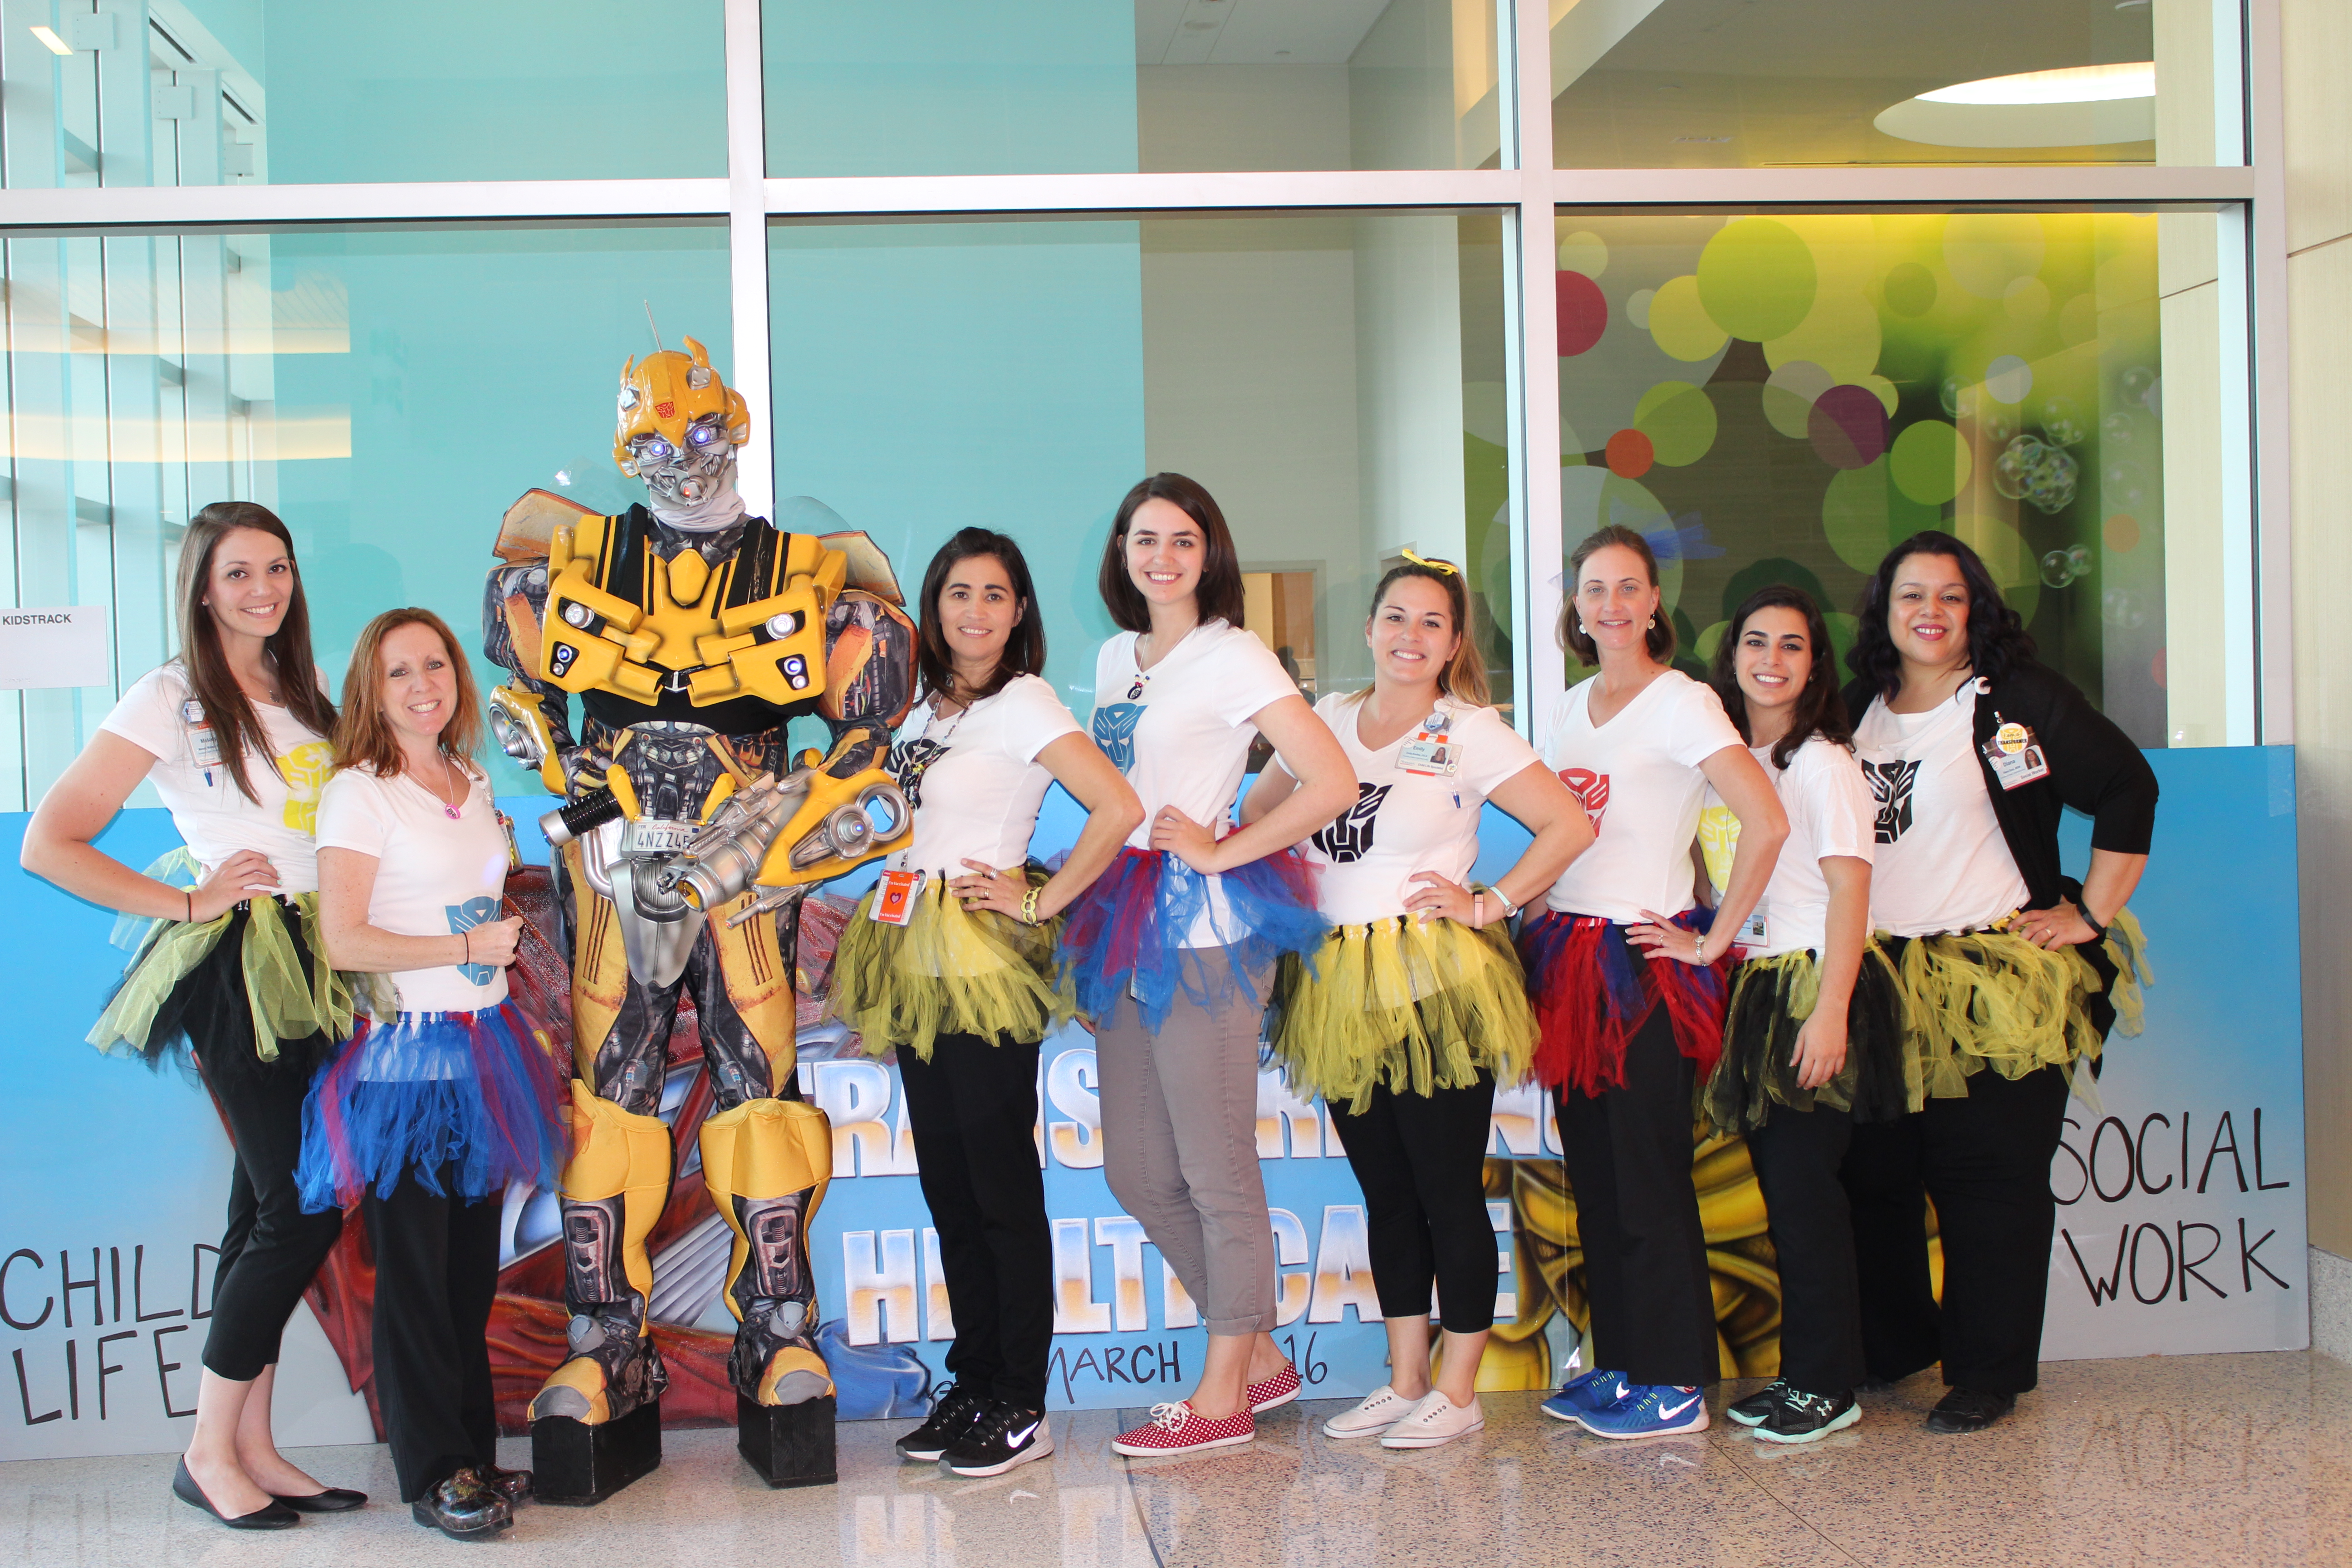 Nemours Children's Hospital Child Life and Social Work team with Bumble Bee